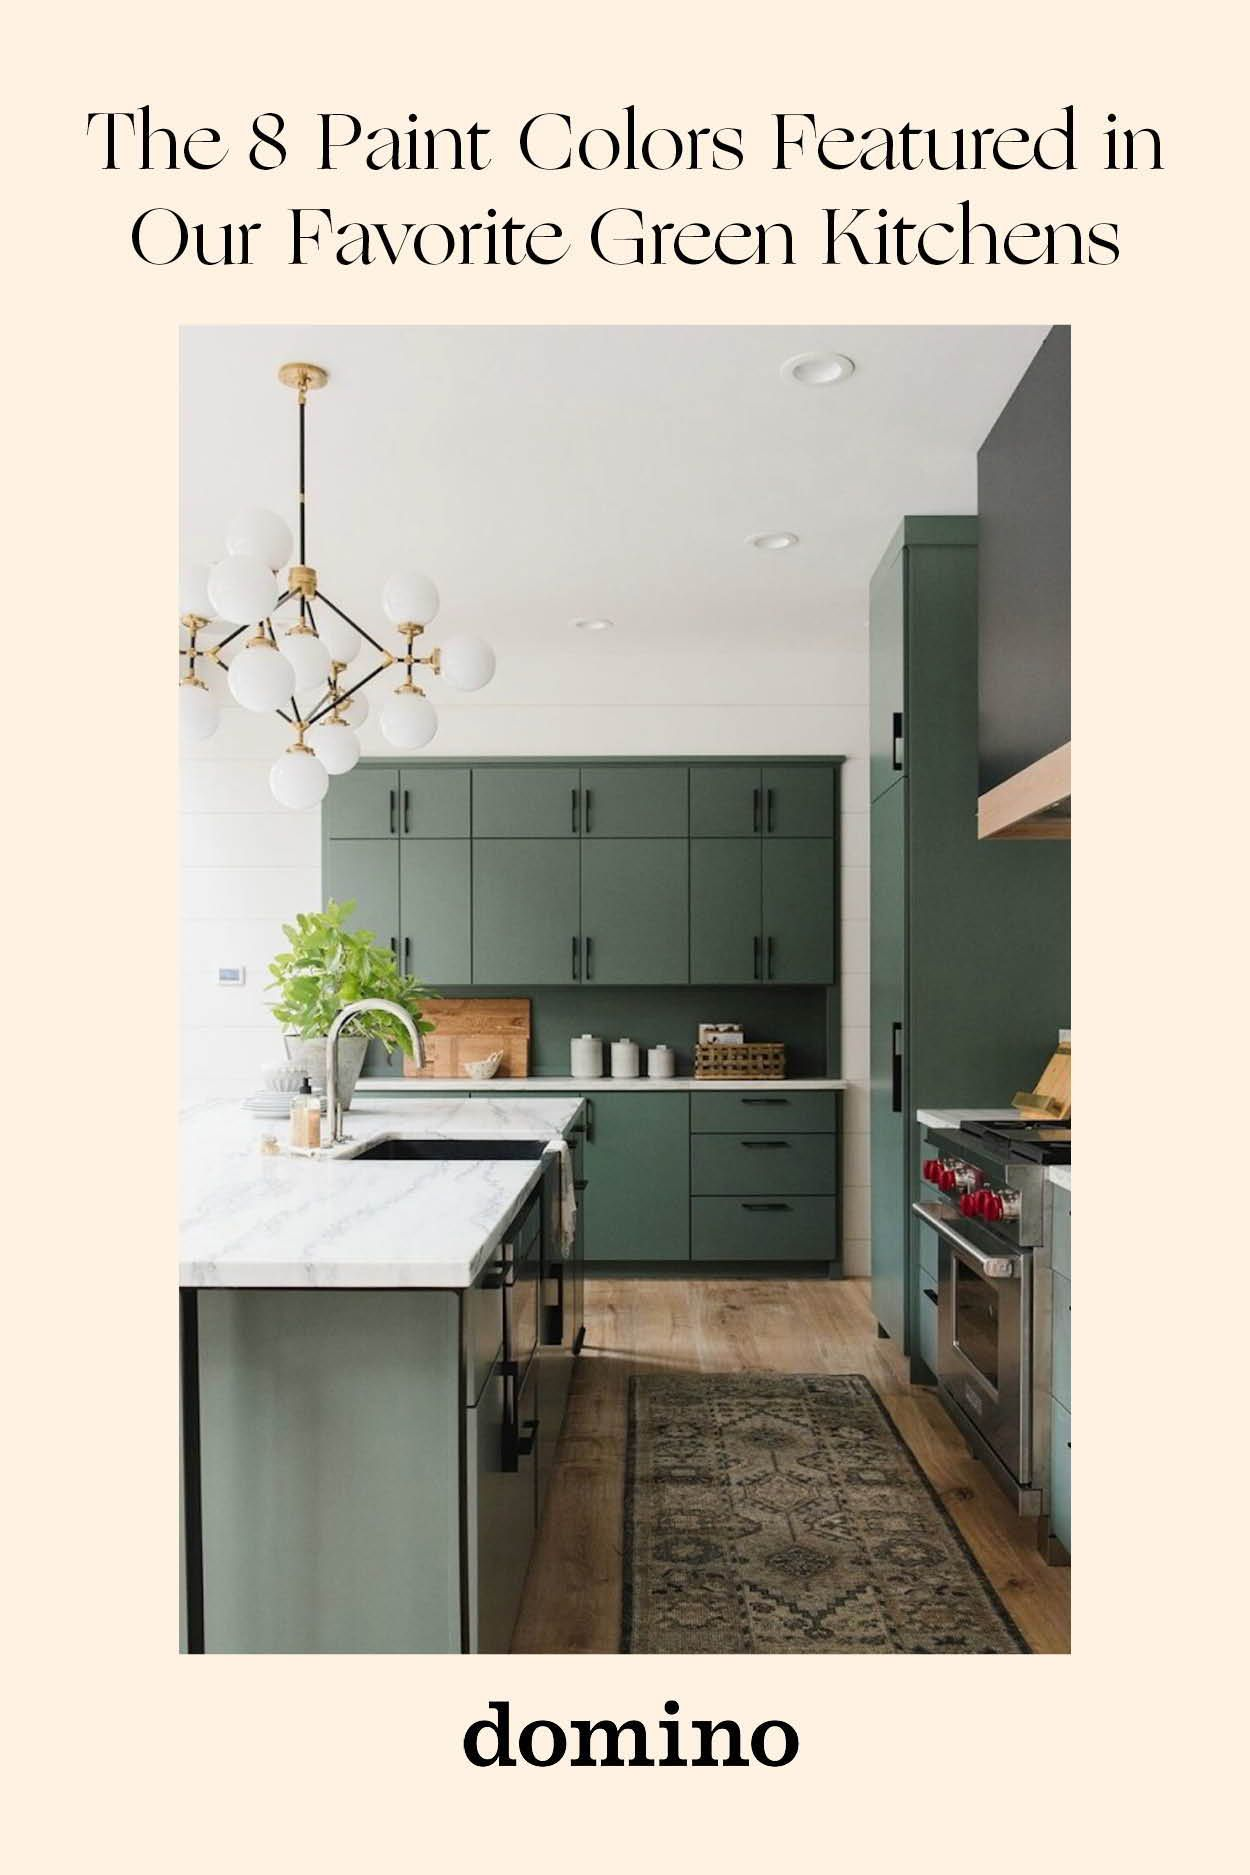 11 Green Kitchen Cabinet Paint Colors We Swear By In 2020 Painted Kitchen Cabinets Colors Green Kitchen Cabinets Green Kitchen Walls